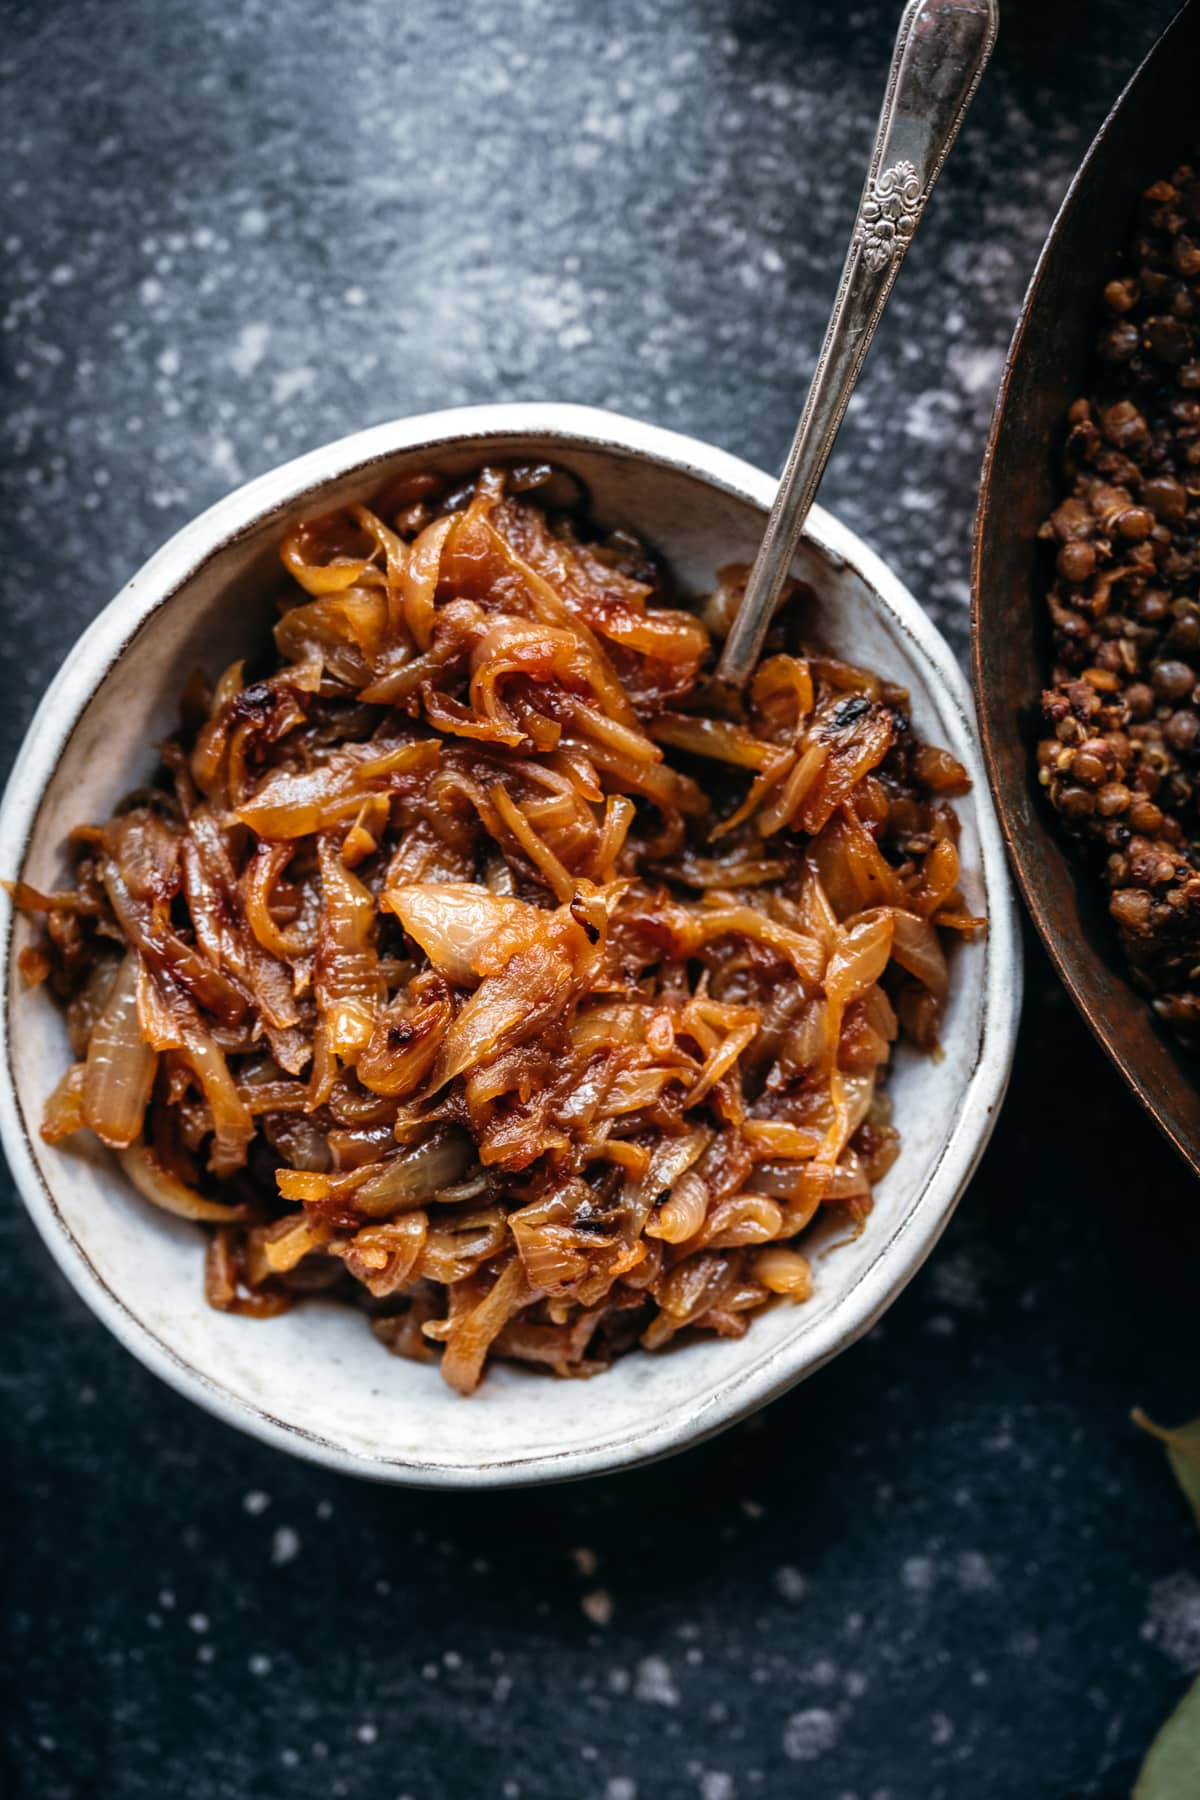 close up view of caramelized onions in a bowl